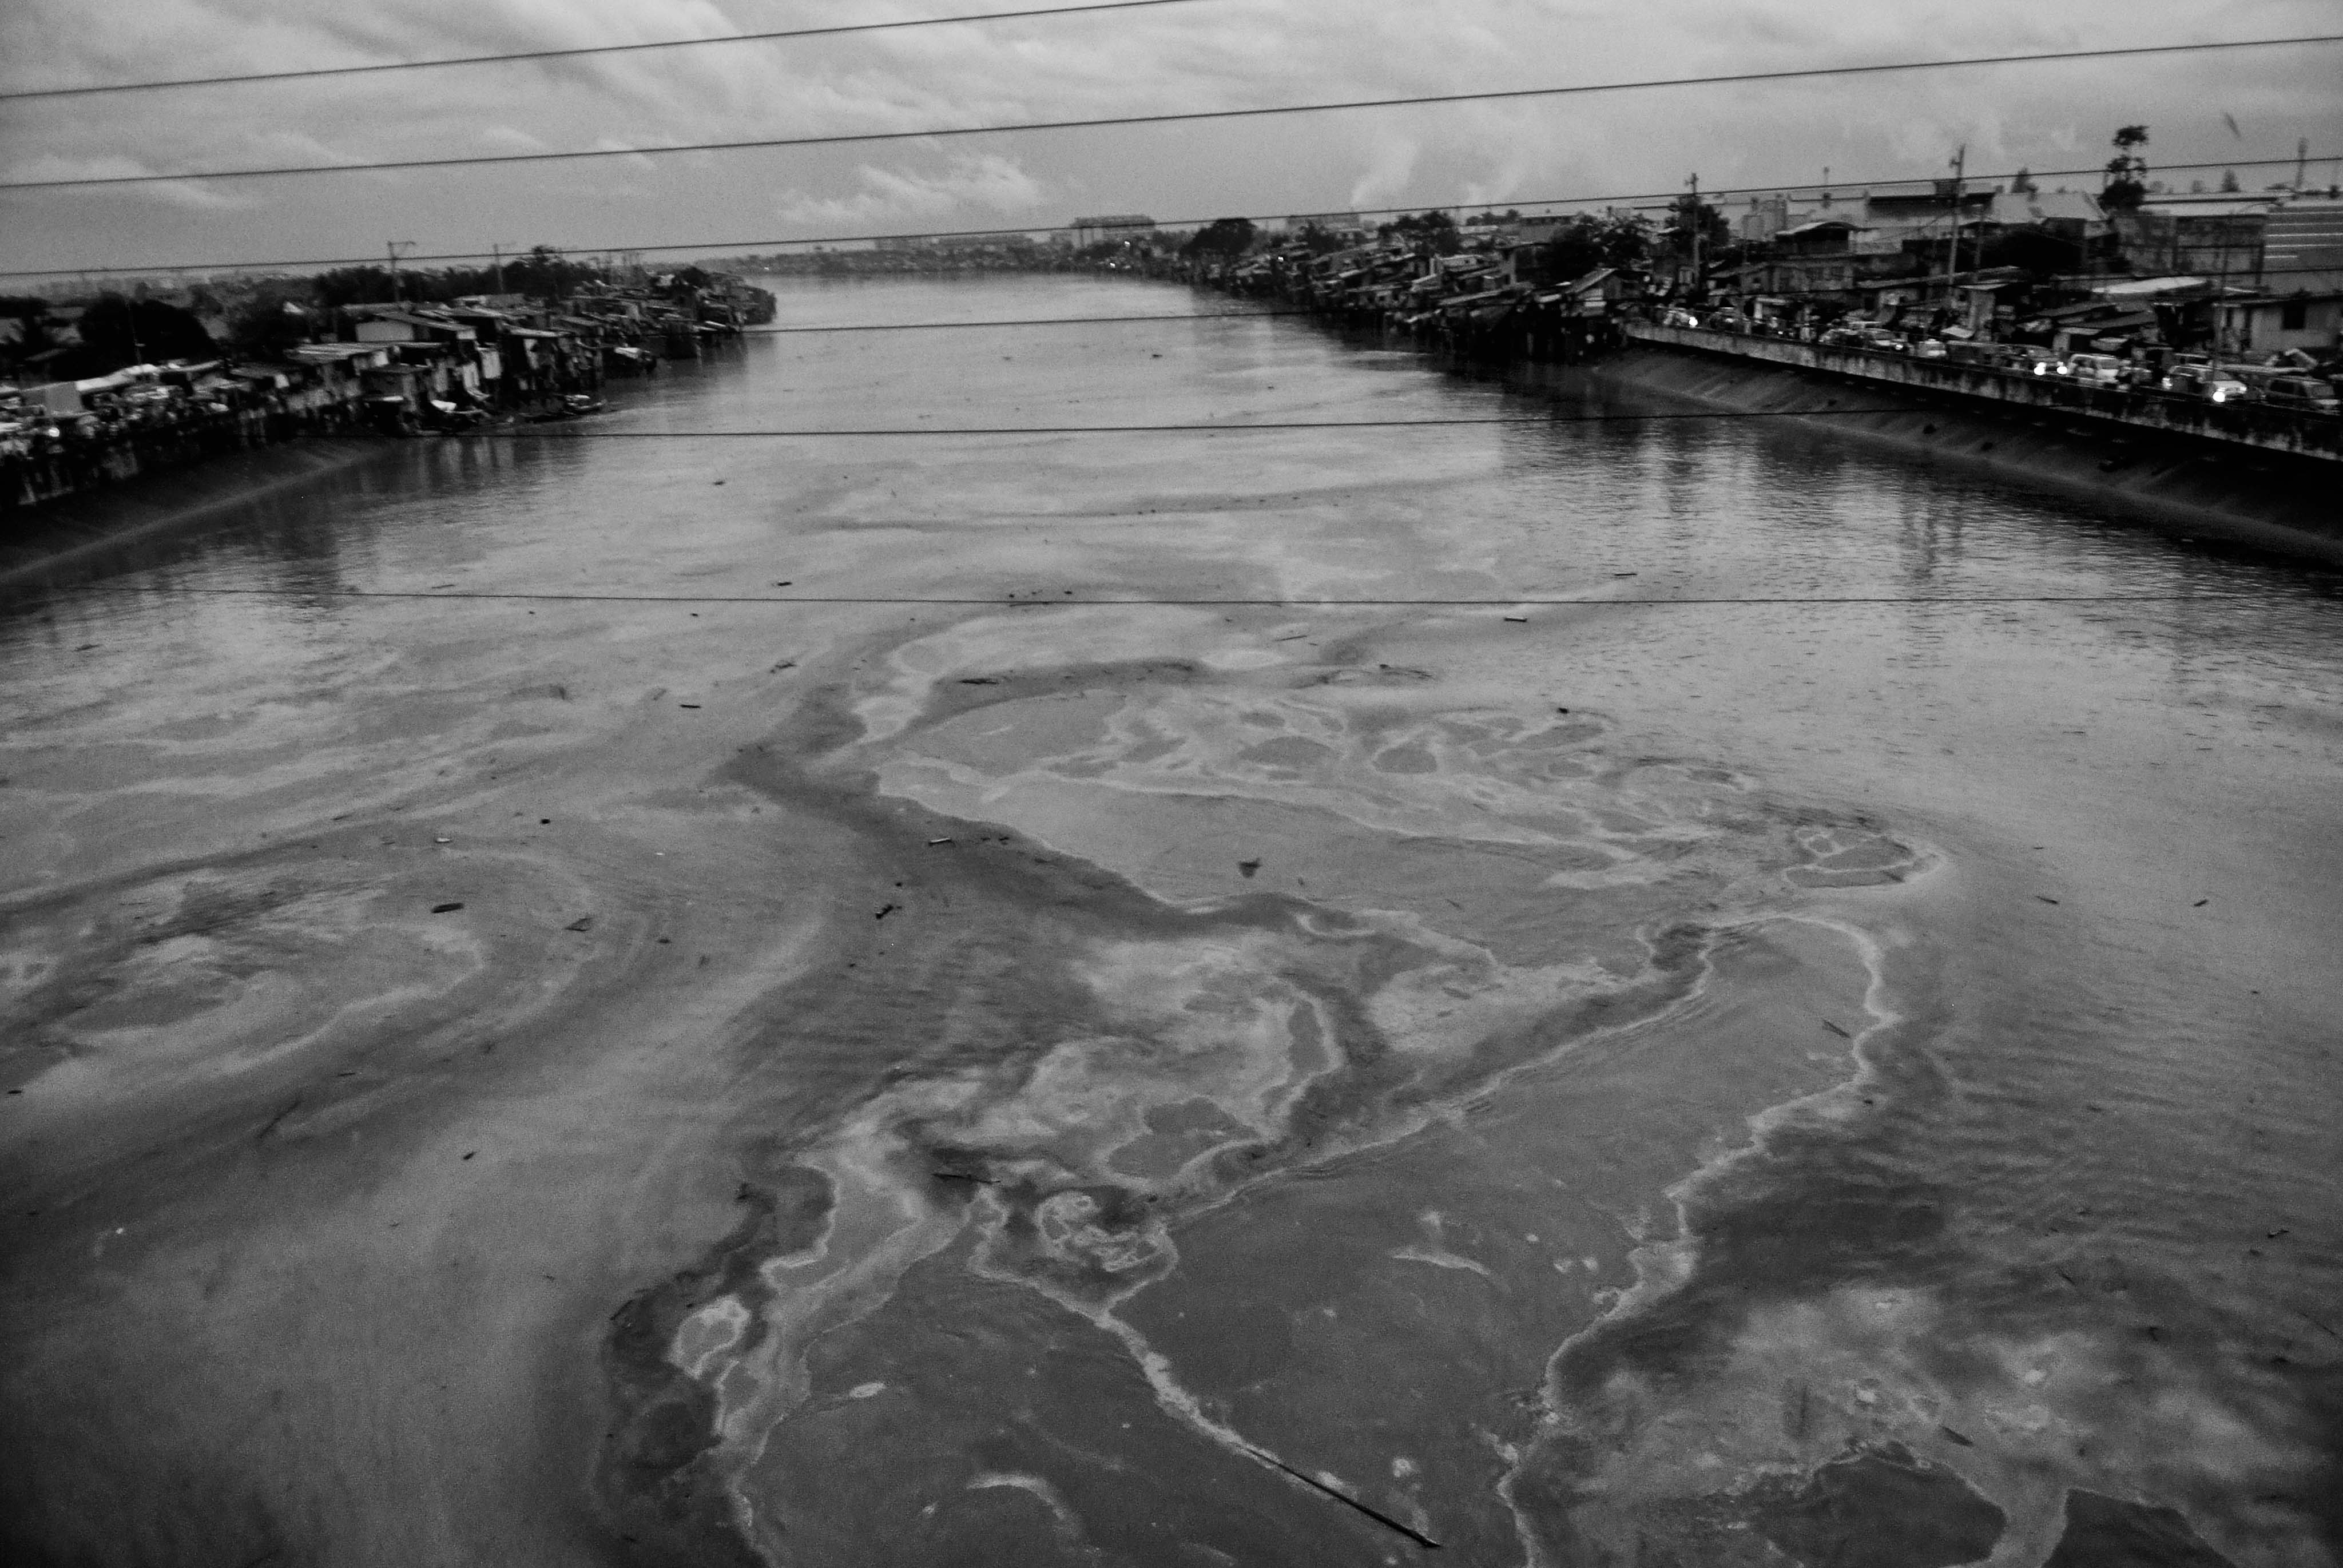 Pollution is visible on the Pasig River following Typhoon Ketsana on Sept. 28, 2009.